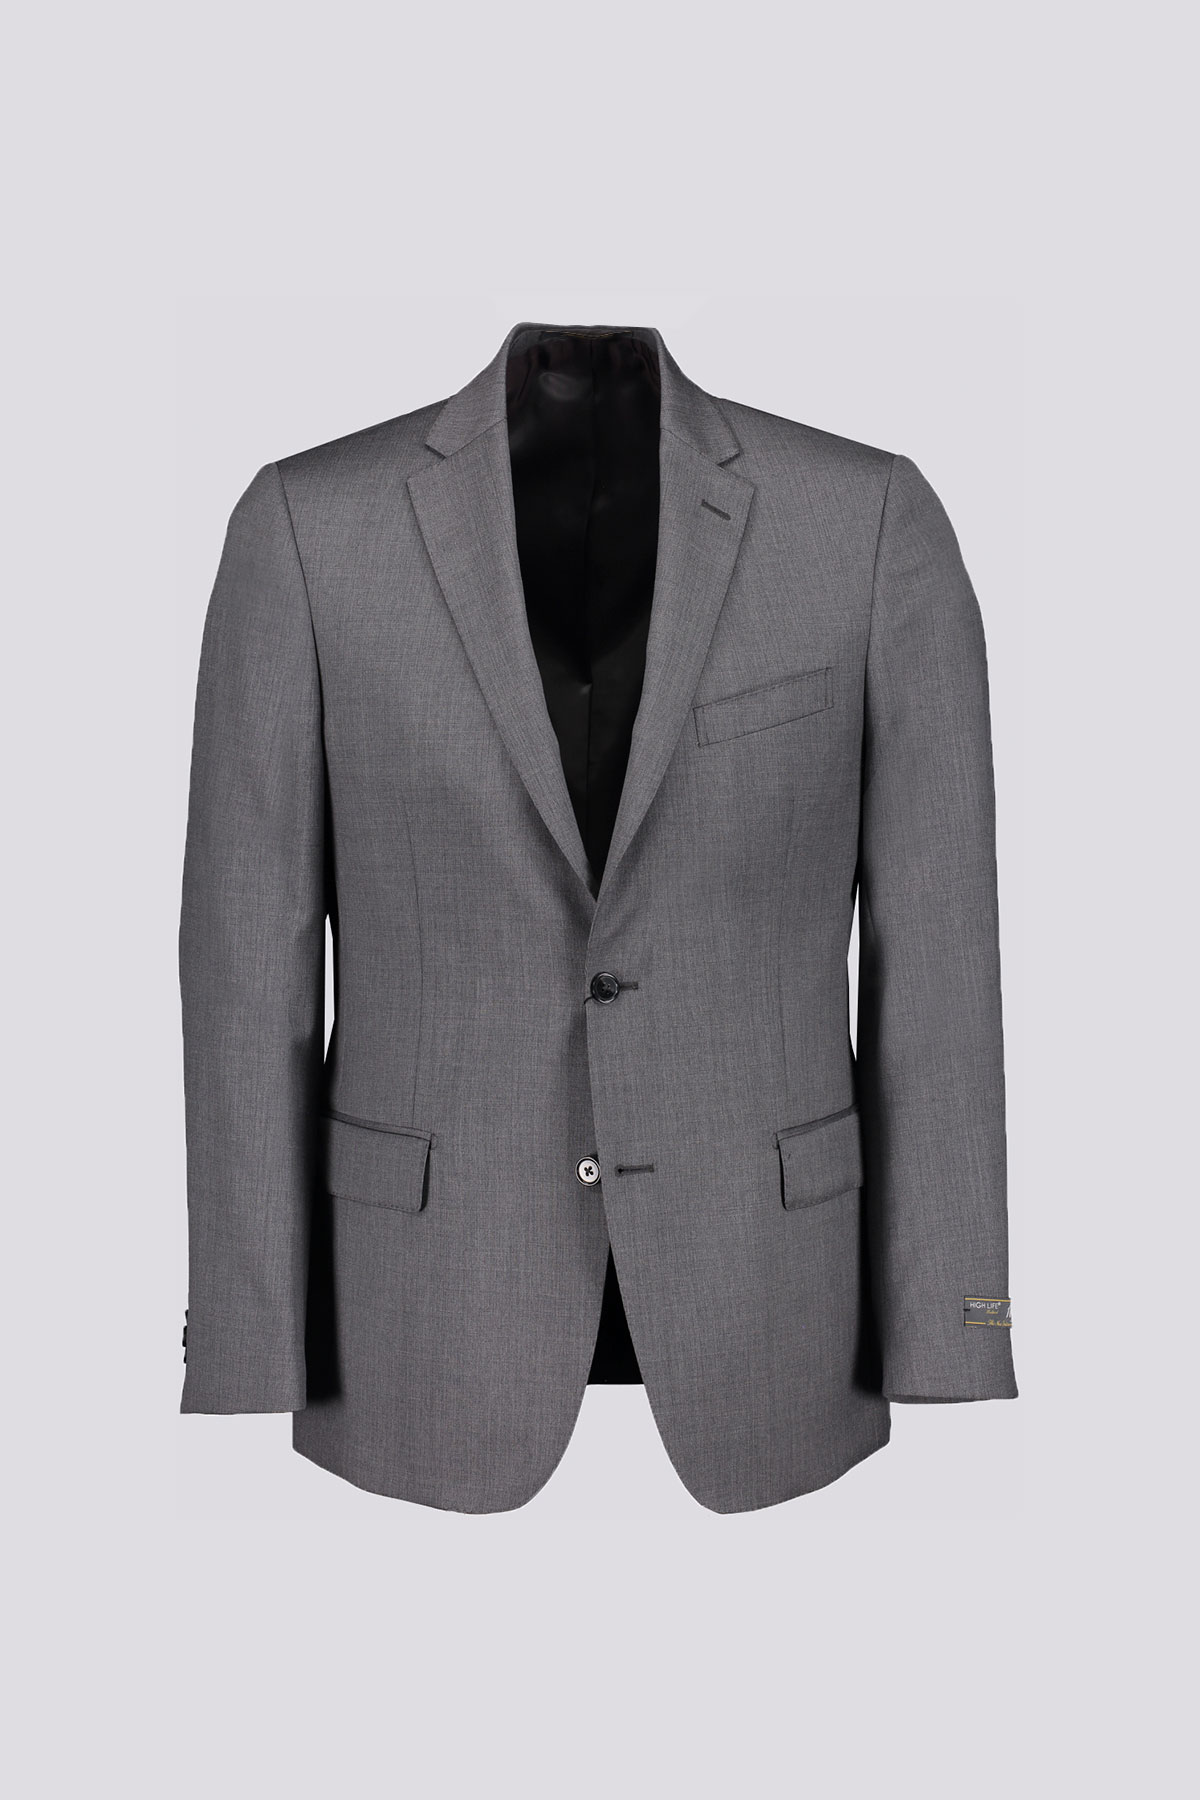 TRAJE MARCA HIGH LIFE GRIS CORTE REGULAR